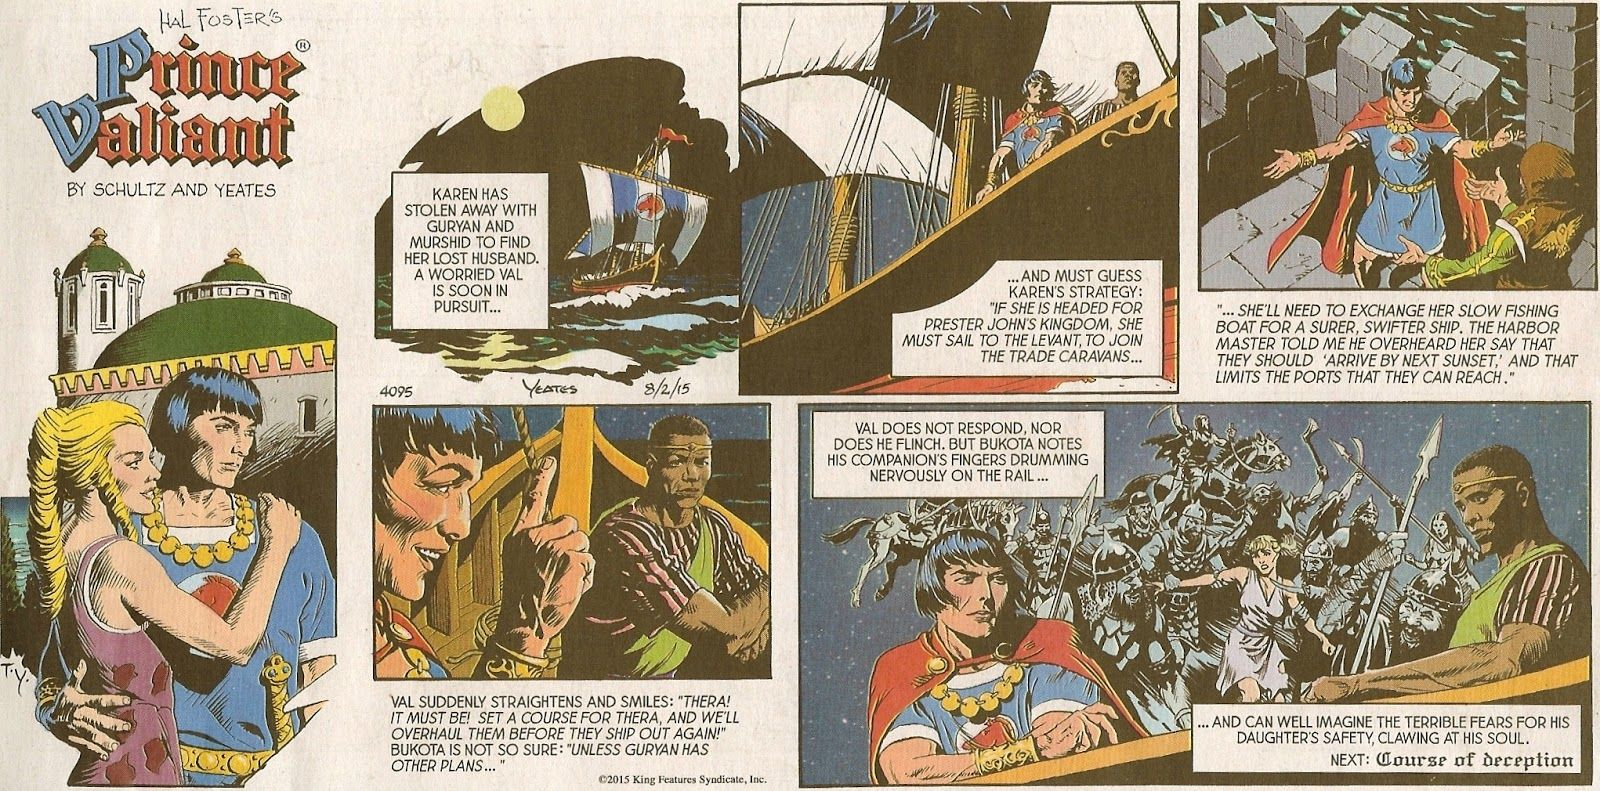 Rather good comic image prince strip valiant think, that